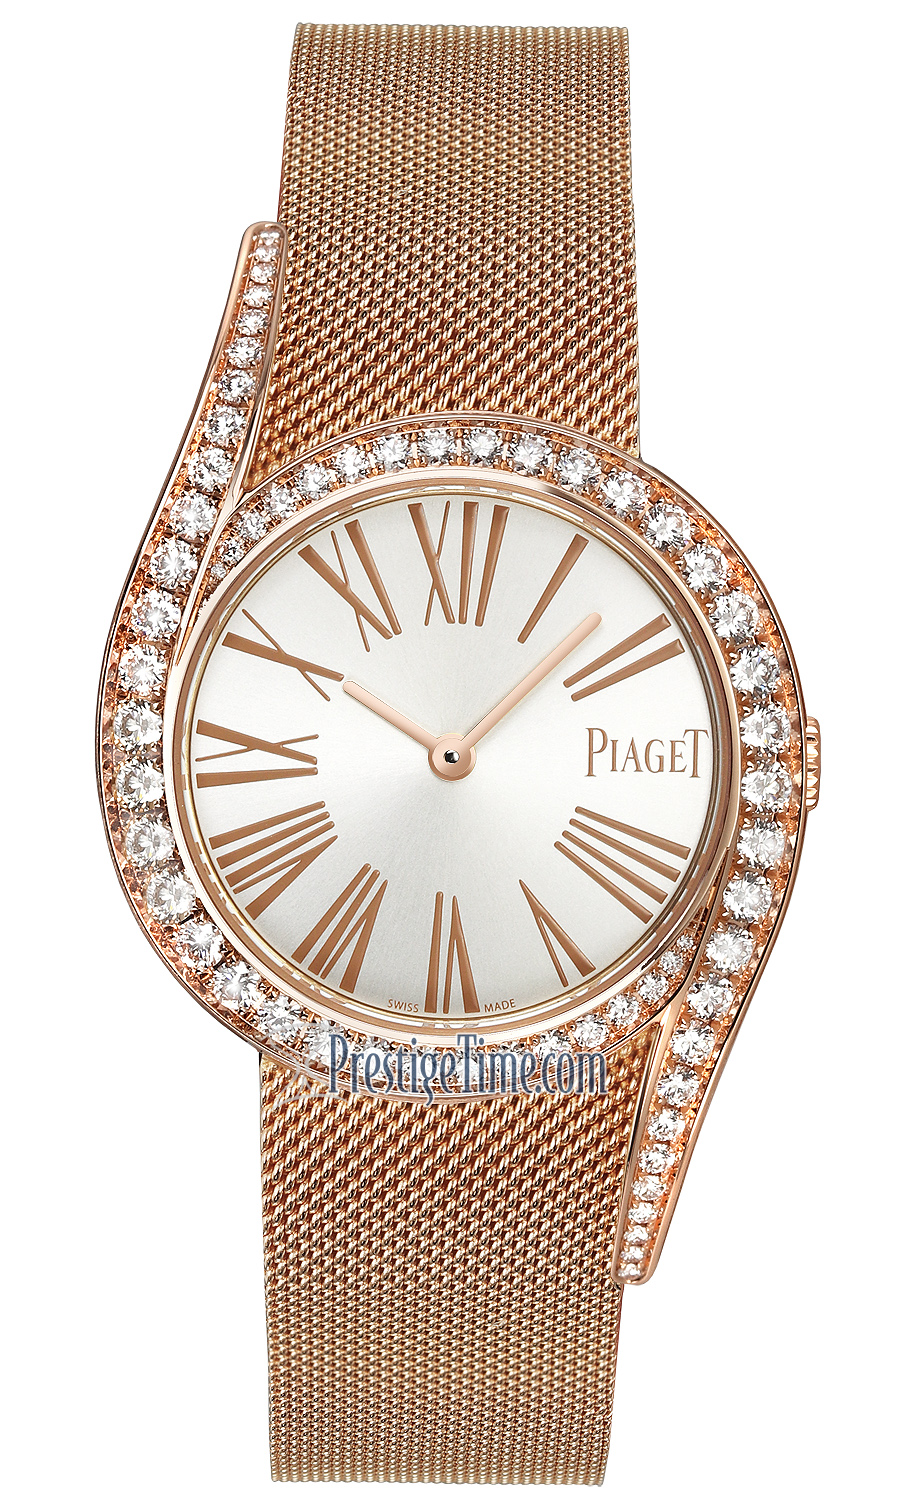 4941109c70b g0a41213 Piaget Limelight Gala 32mm Ladies Watch